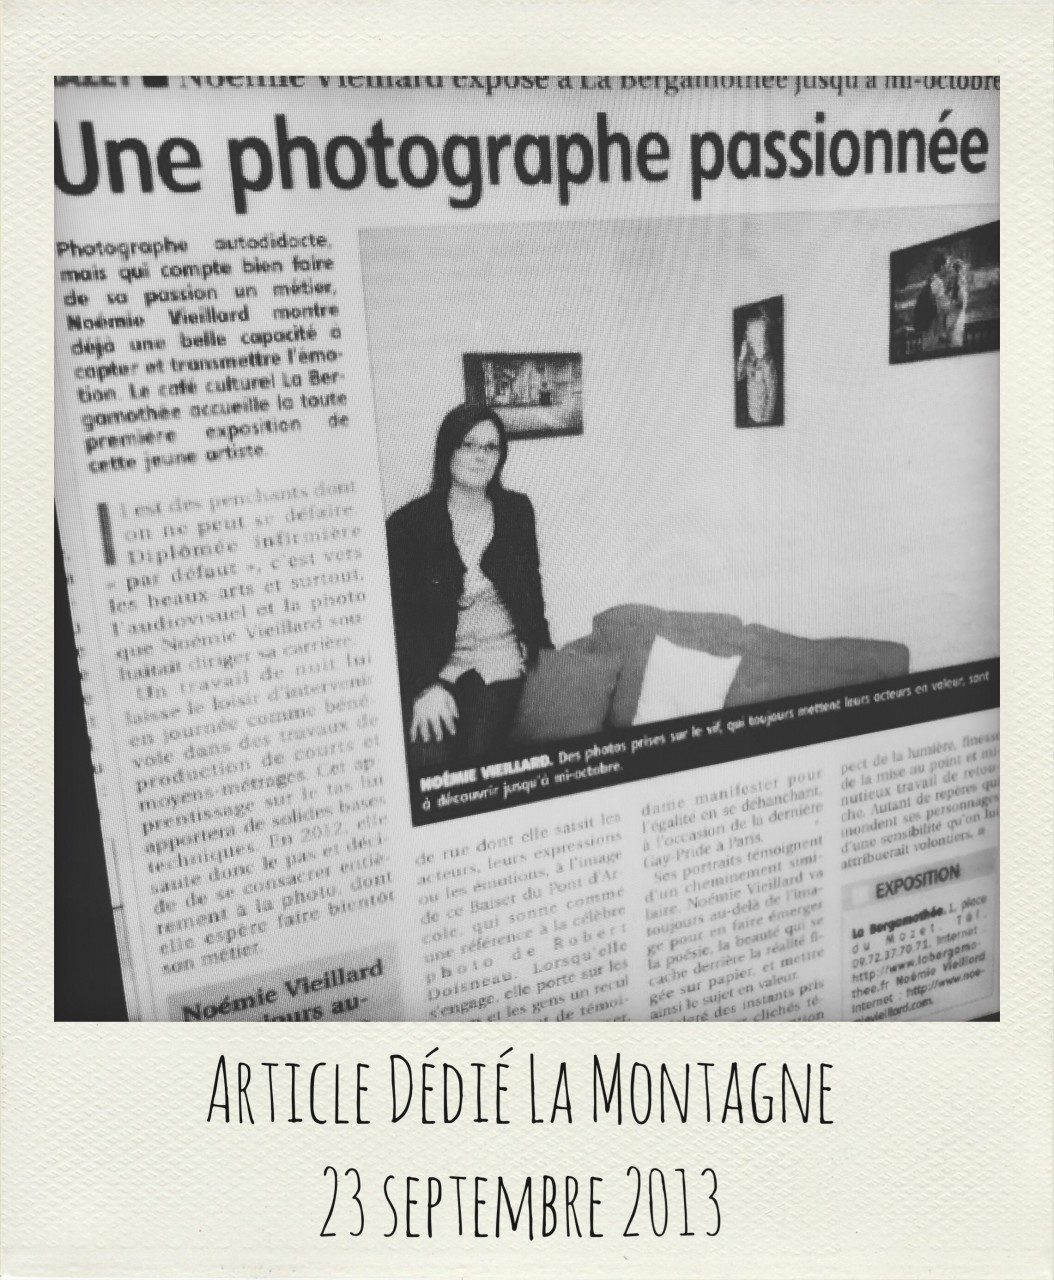 exposition-photo-noemie-vieillard-photographe-clermont-ferrand